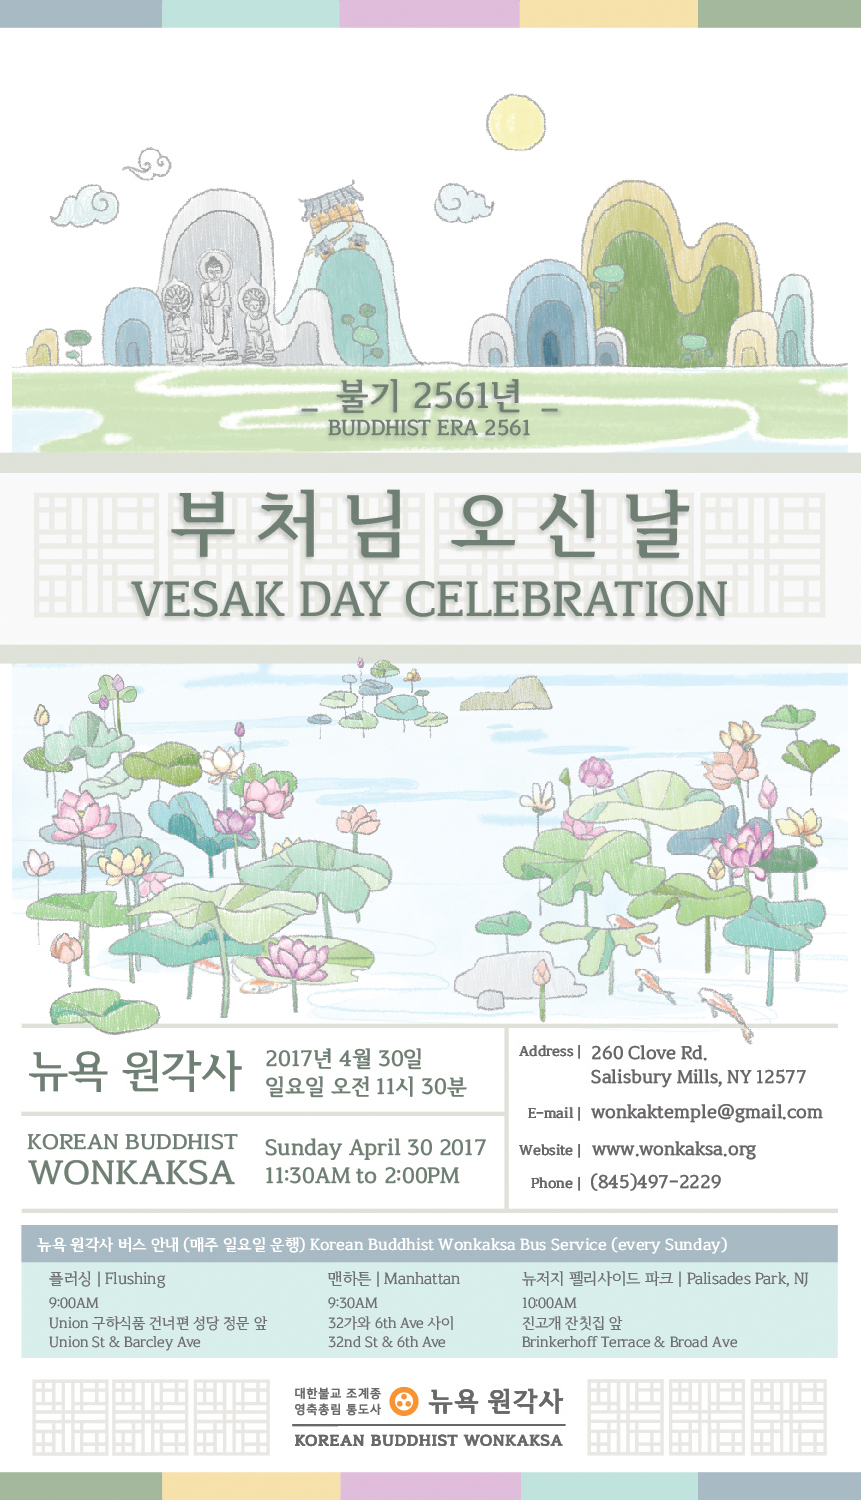 BE2561 VESAK DAY CELEBRATION불기 2561년부처님 오신날 - Sunday, April 30, 2017 at 11:30AMWe are celebrating the biggest ceremony of the year, Vesak Day, or the Buddha's coming. We hope you and your family can join us and share the wisdom, loving kindness, and compassion Buddha conveyed in this world.Date: April 30th, 2017 Sunday 11:30AMPlace: Korean Buddhist Wonkaksa260 Clove Rd Salisbury Mills, NY 12577Phone: (845)497-2229Email: wonkaktemple@gmail.com이 세상에 오시어 참 생명의 의미를 전하시고지혜와 자비로 중생을 제도하신부처님의 탄신일을 함께 나눌 수 있기를 바랍니다.일시: 불기 2561년 4월 30일 일요일 오전 11시 30분장소: 뉴욕 원각사 대법당260 Clove Rd Salisbury Mills,NY 12577연락처: (845)497-2229wonkaktemple@gmail.com